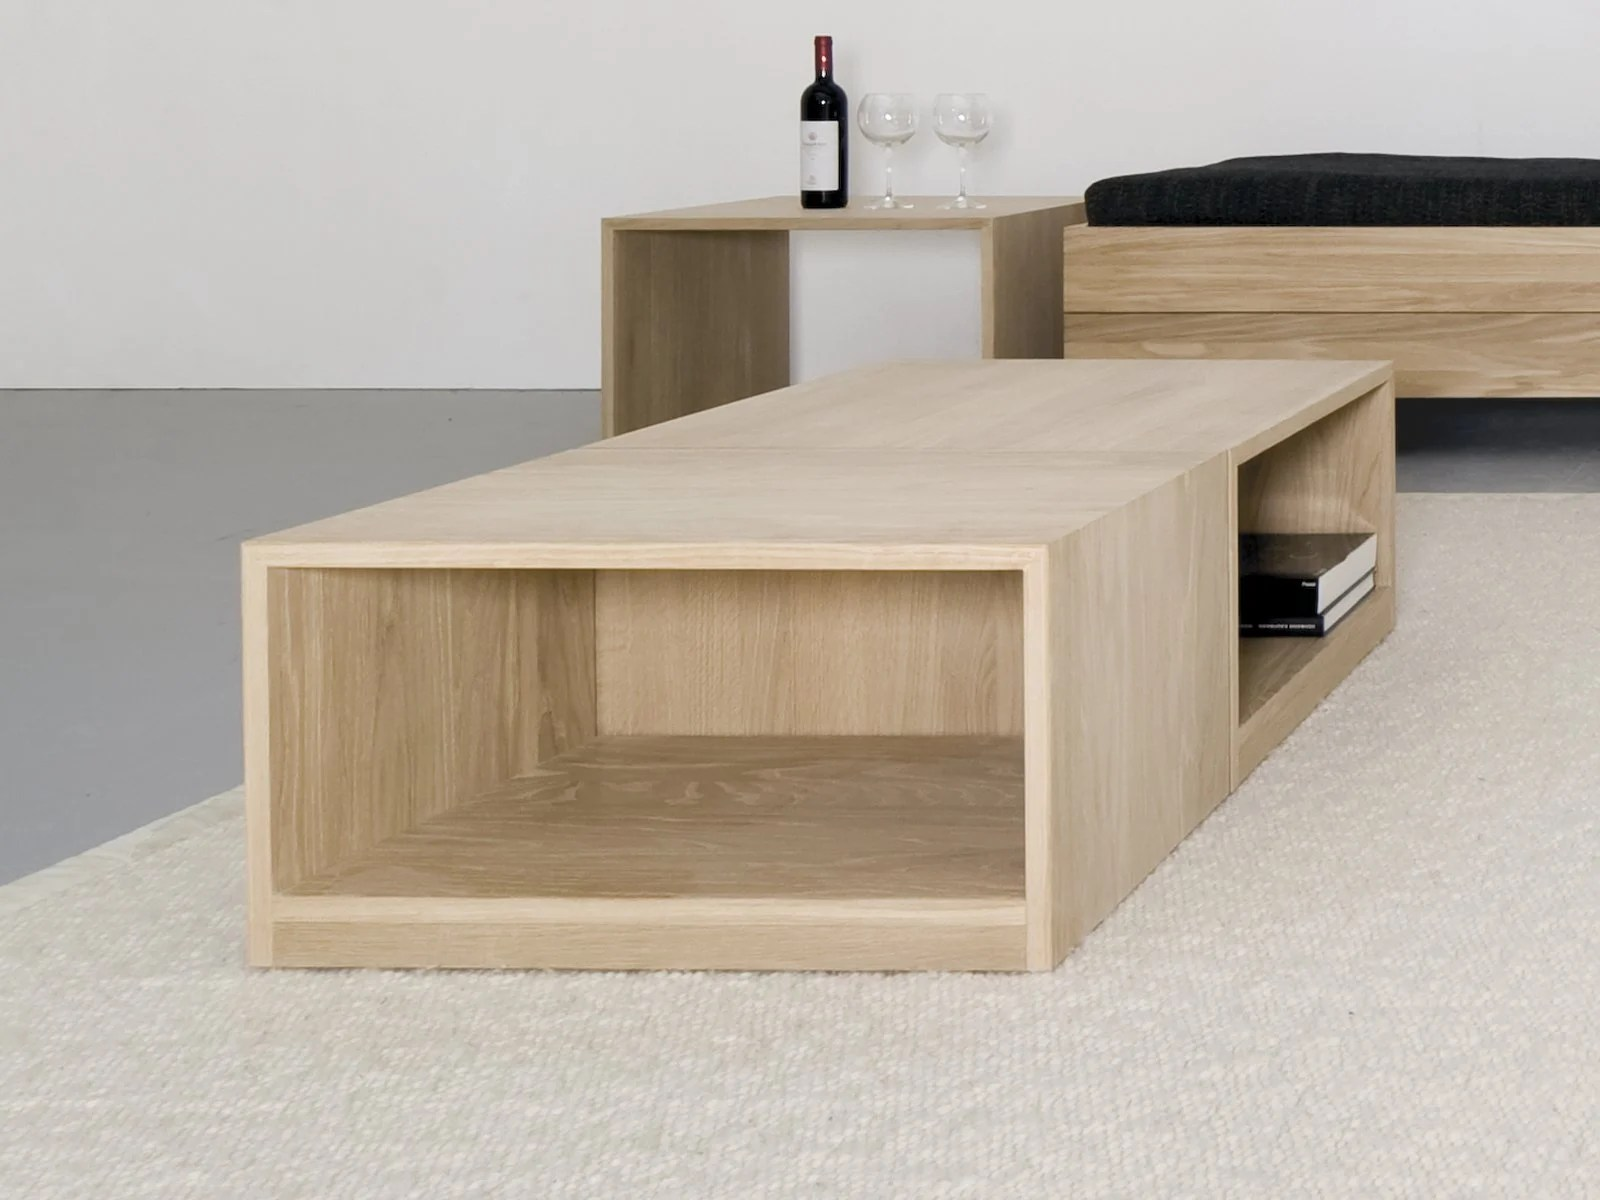 Multiplex Couchtisch Solid Wood Stool Coffee Table Relikt By Sanktjohanser